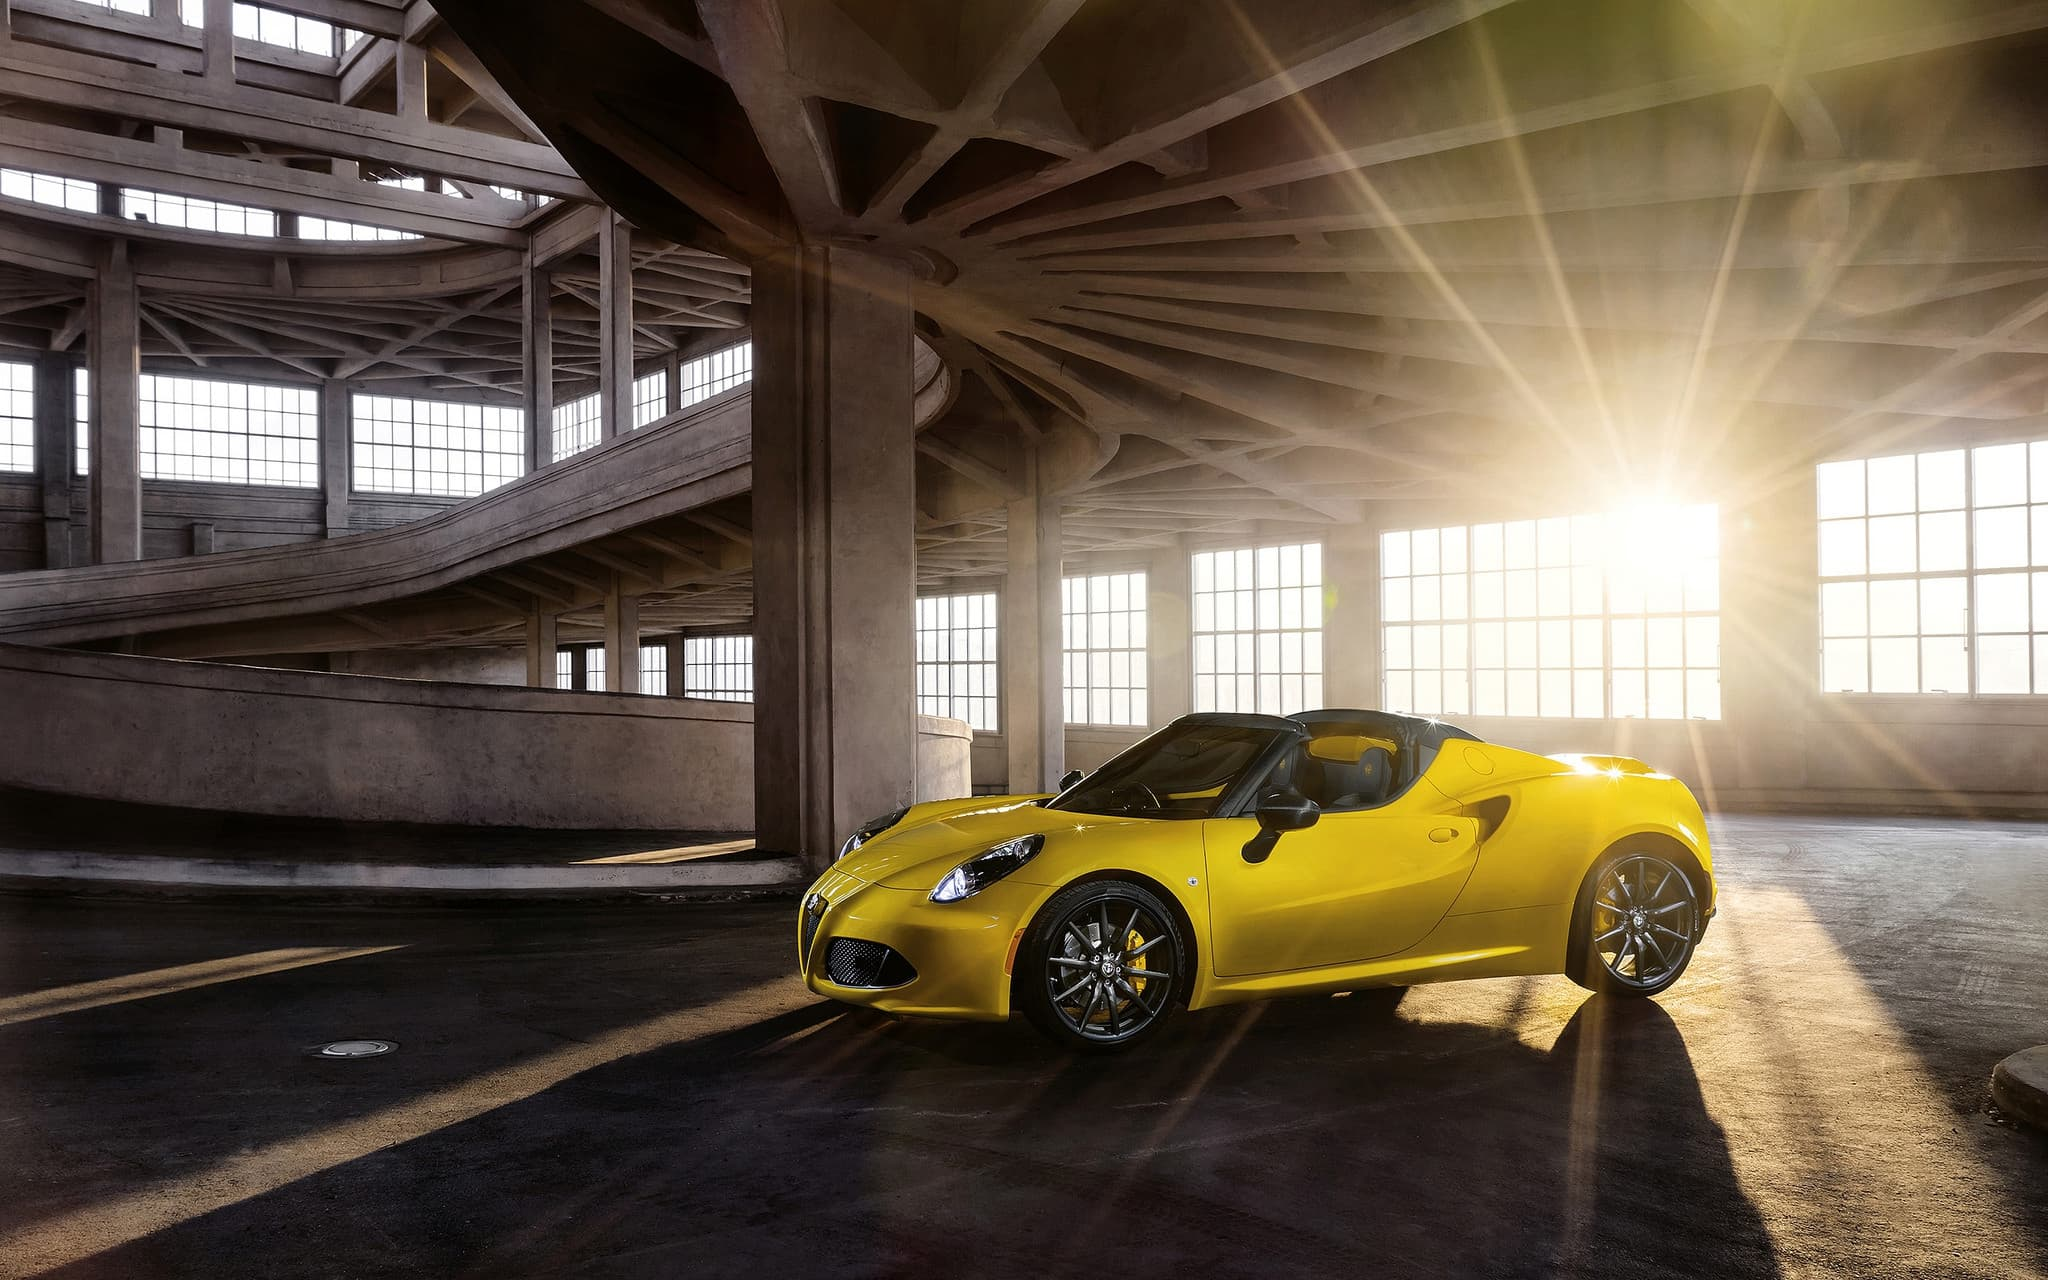 2016 Alfa Romeo 4C Spider 1920x1080p wallpaper